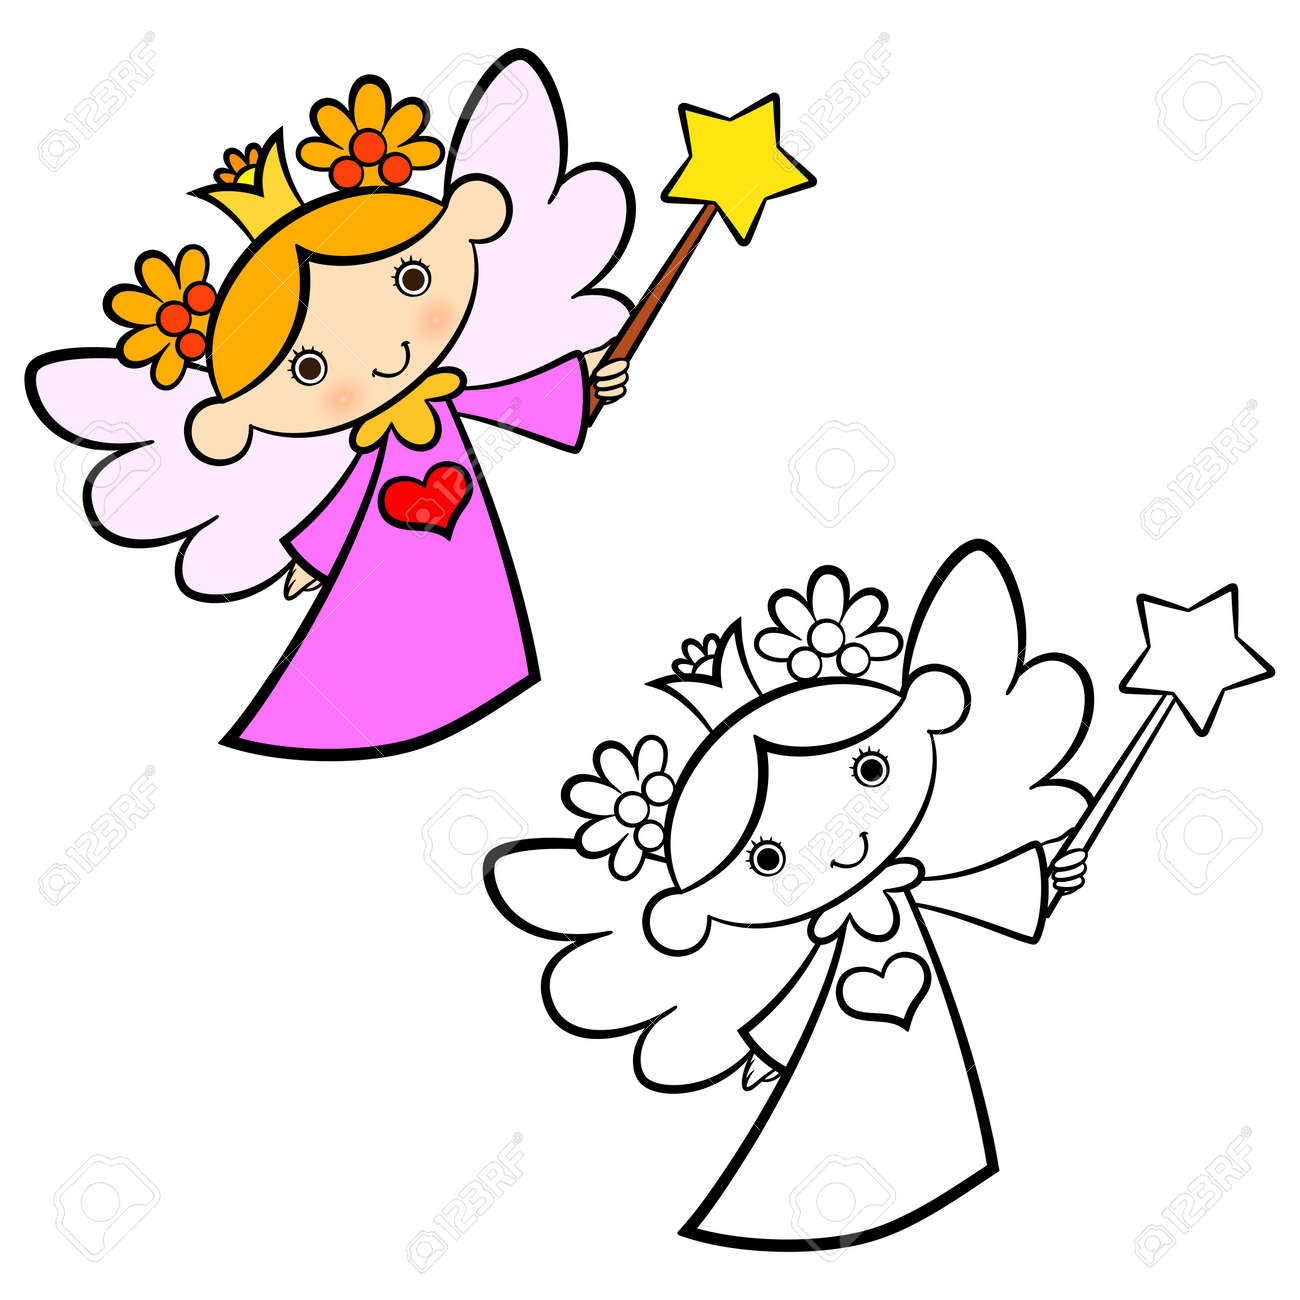 Cute Fairy Angel Coloring Book For Kids Royalty Free Cliparts ...